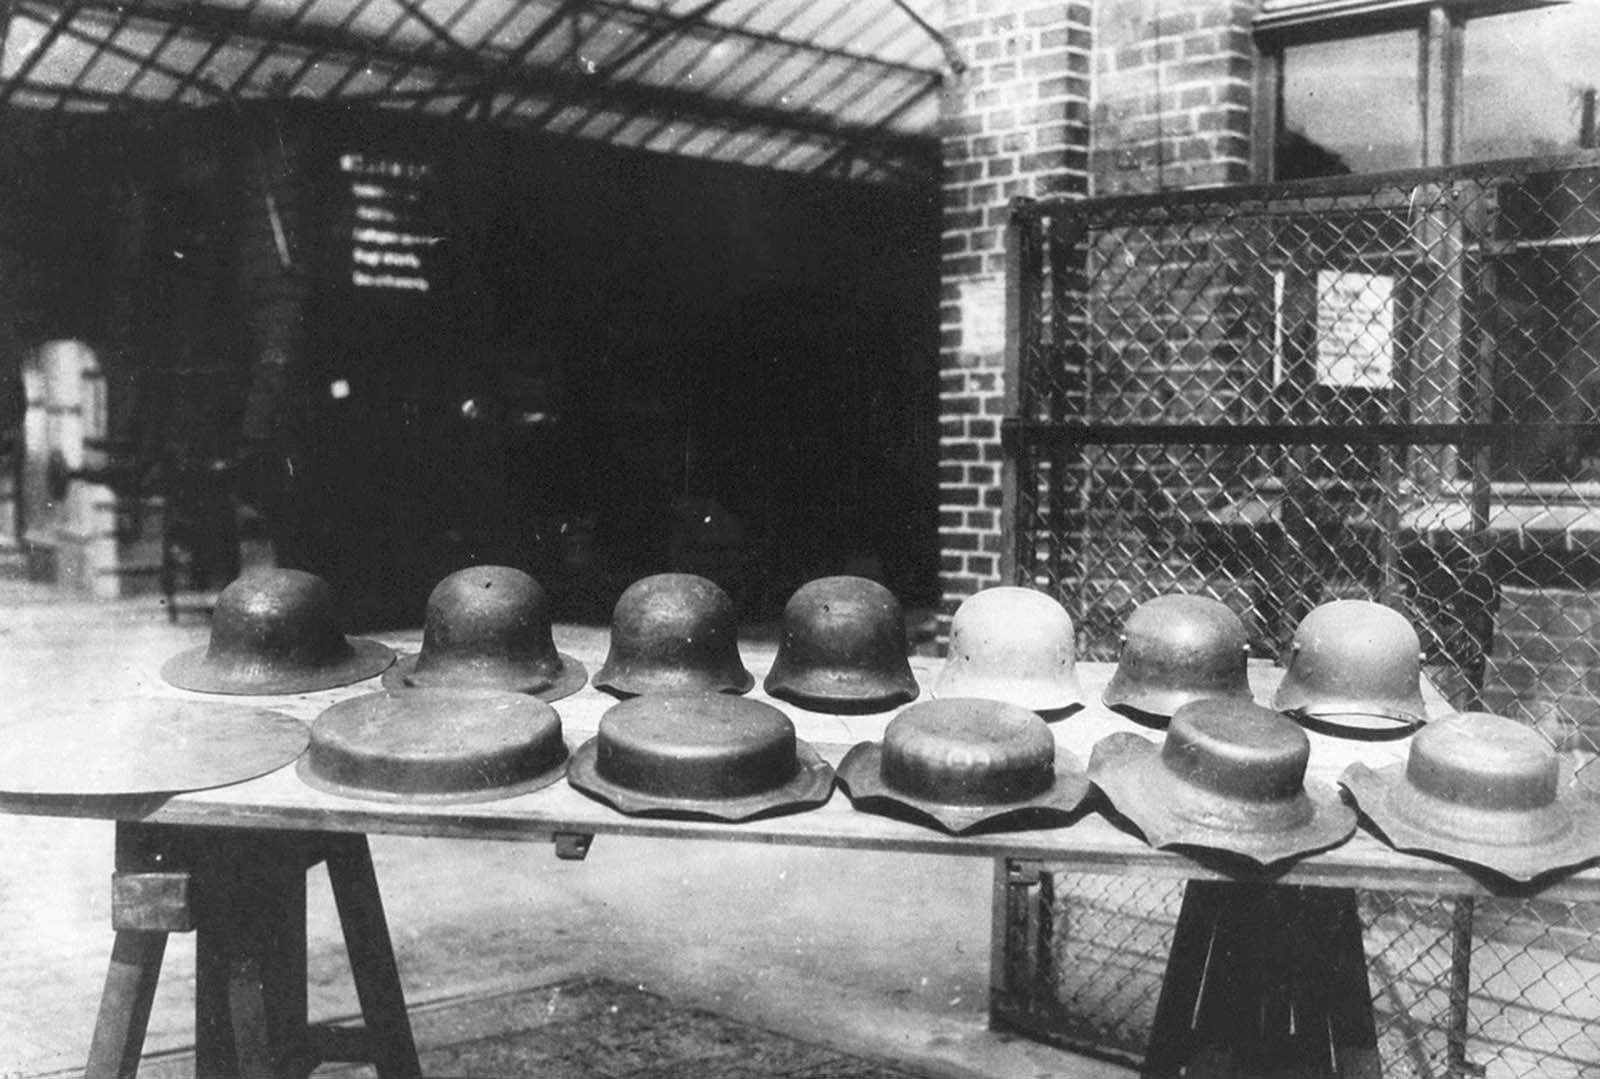 Stahlhelm, the stages of the helmet-making process of Stahlhelms for